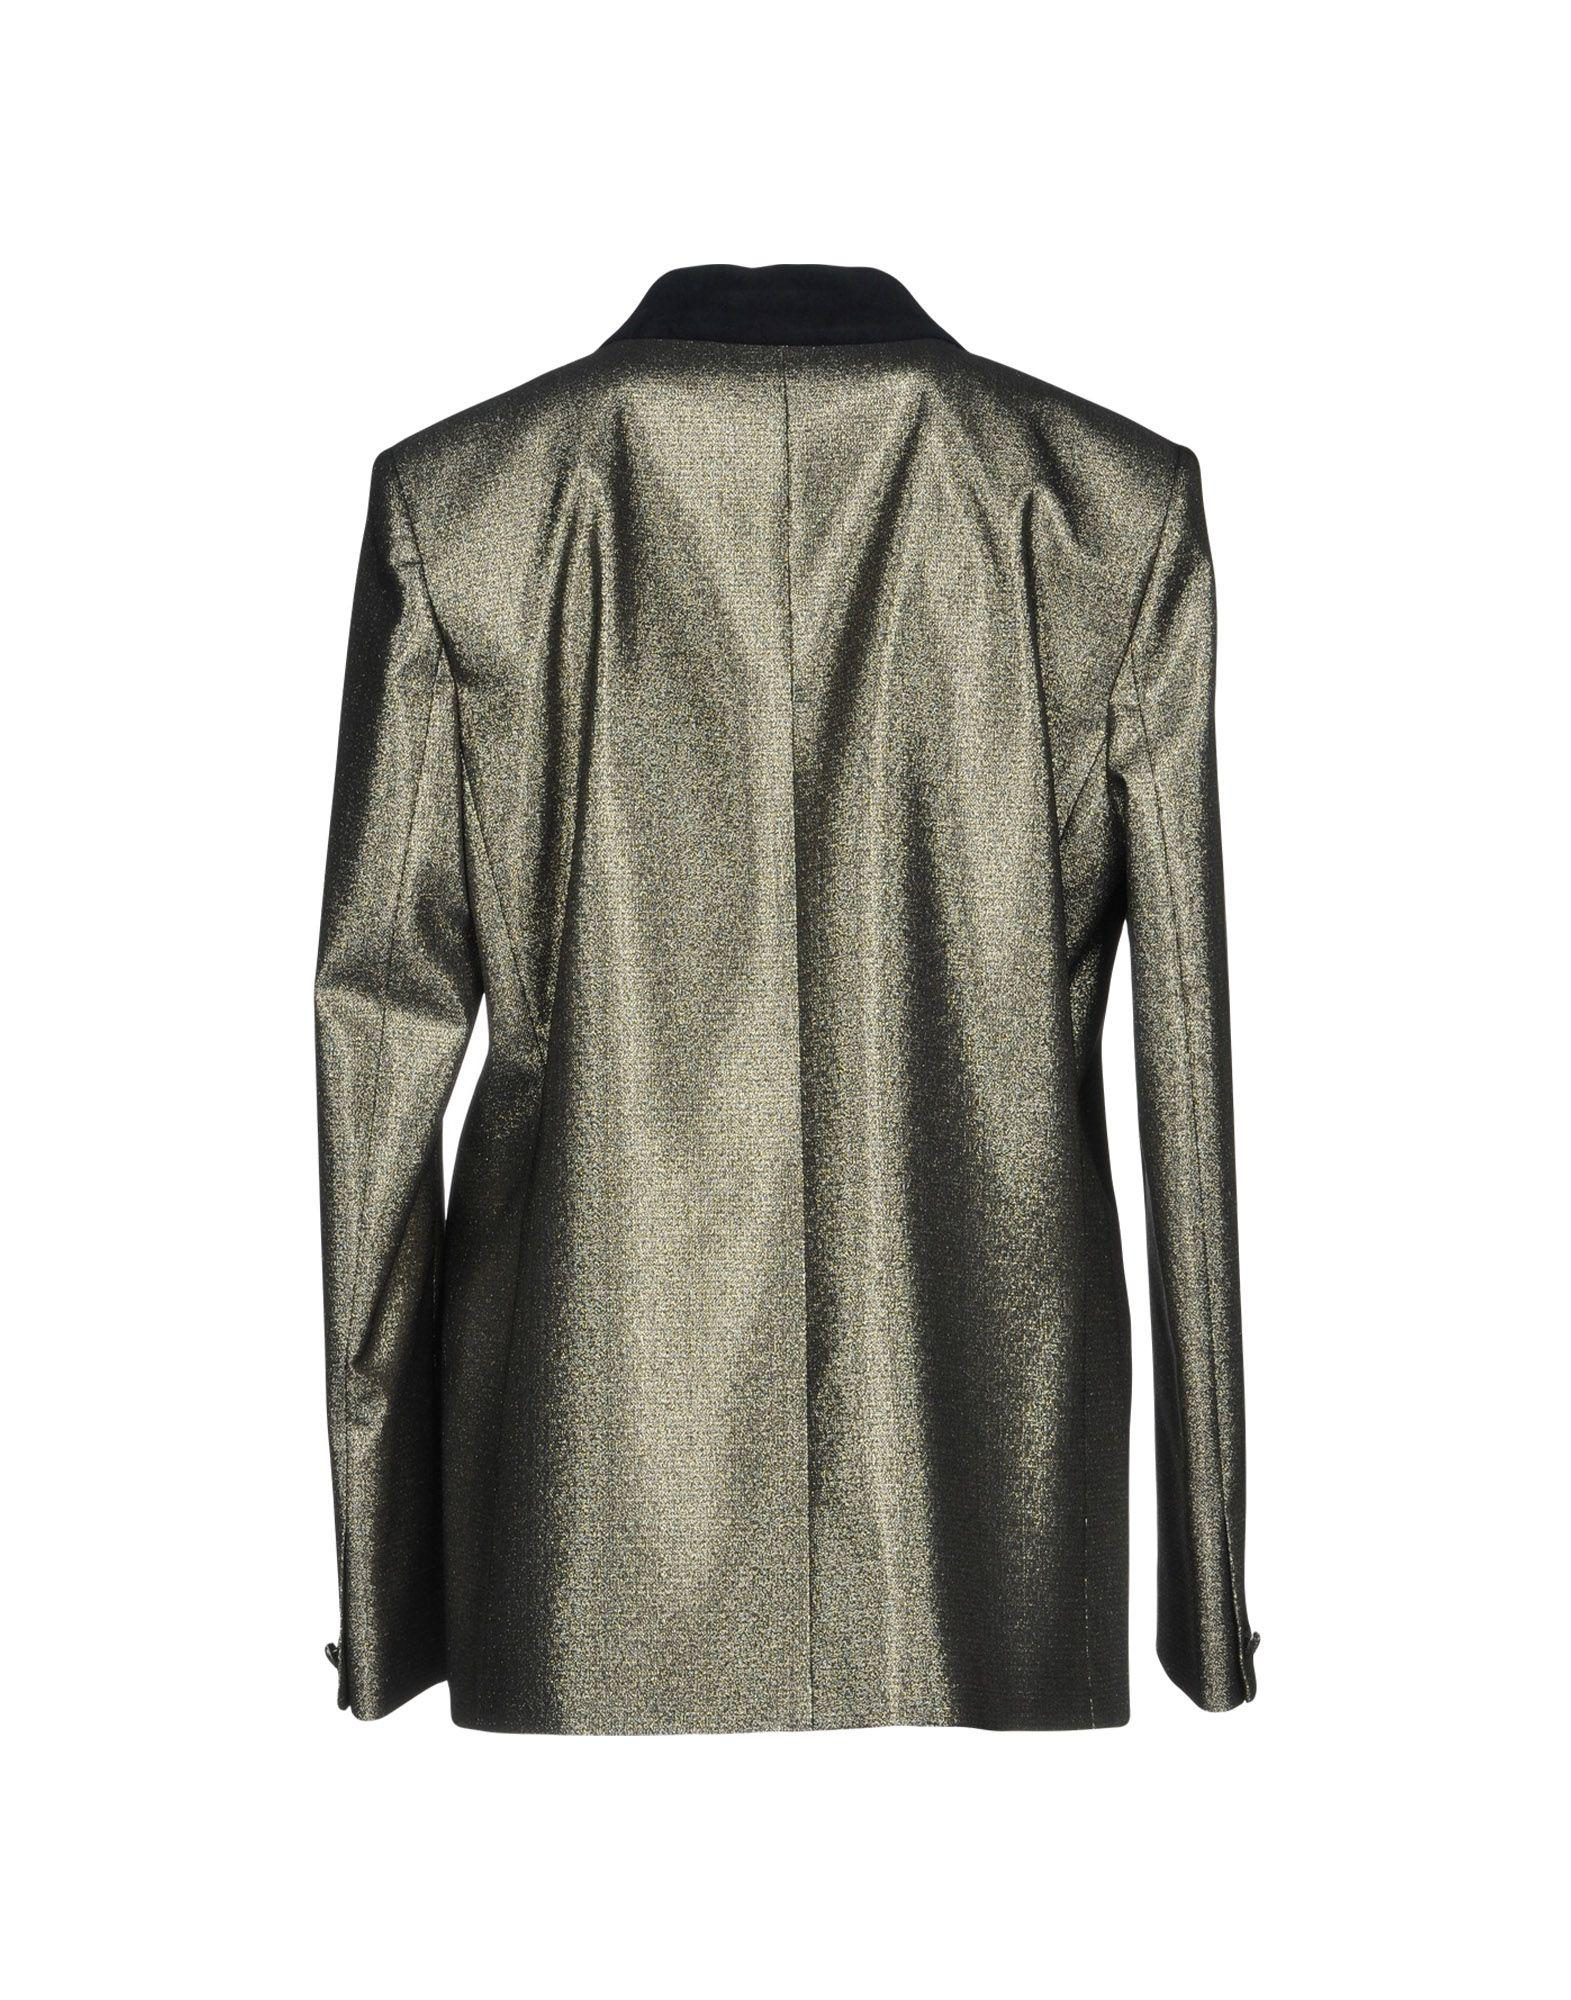 on sale 5aef9 7bb35 Lyst - Just Cavalli Blazer in Metallic